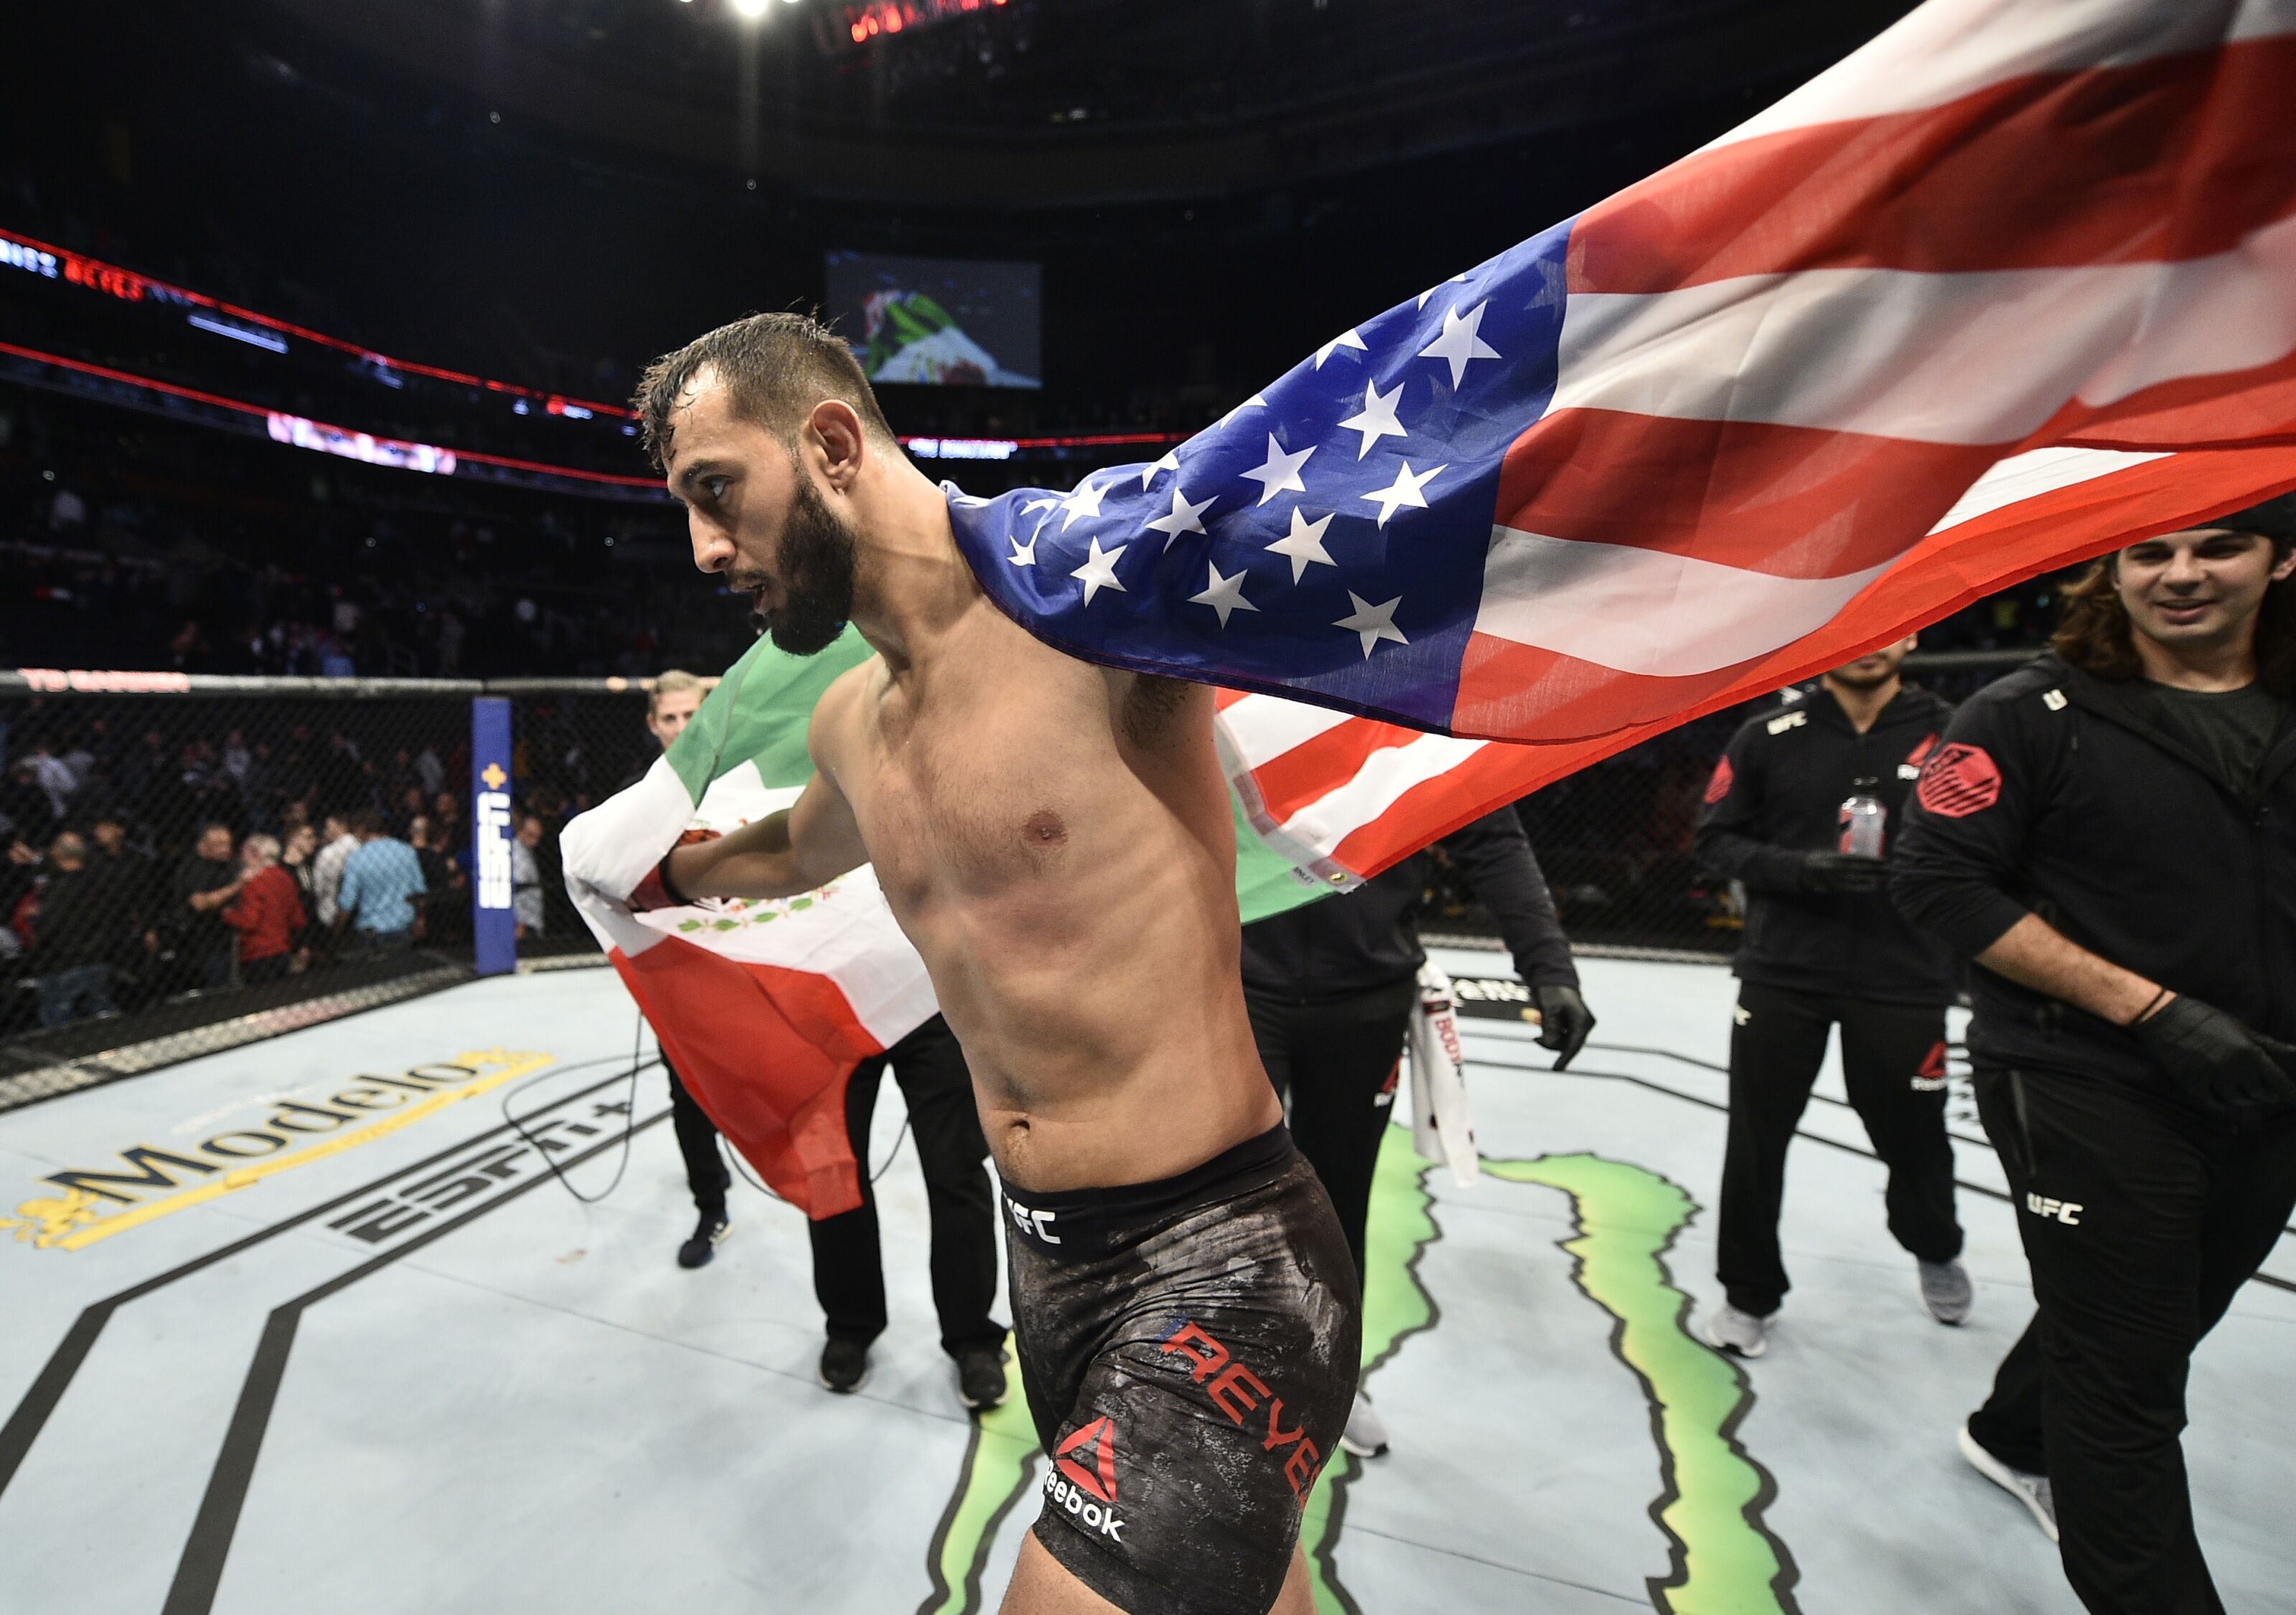 The day after: Winners (and losers) of UFC Boston react